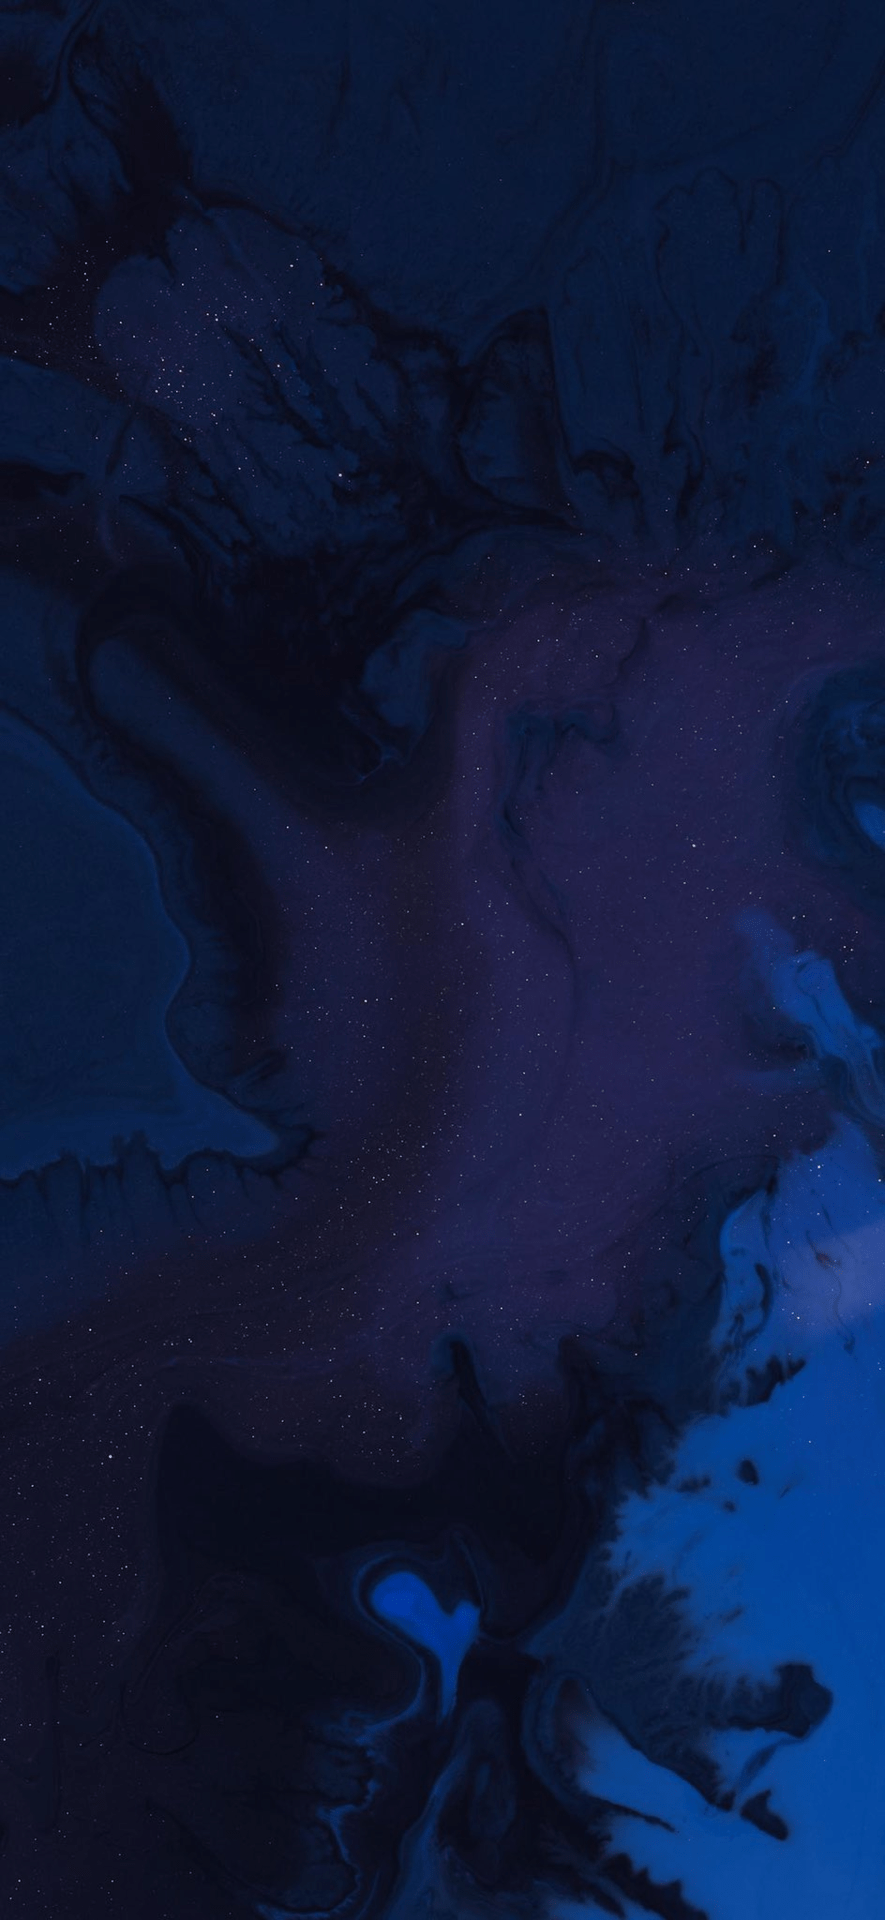 Download the new Android Q beta 3 wallpaper here.